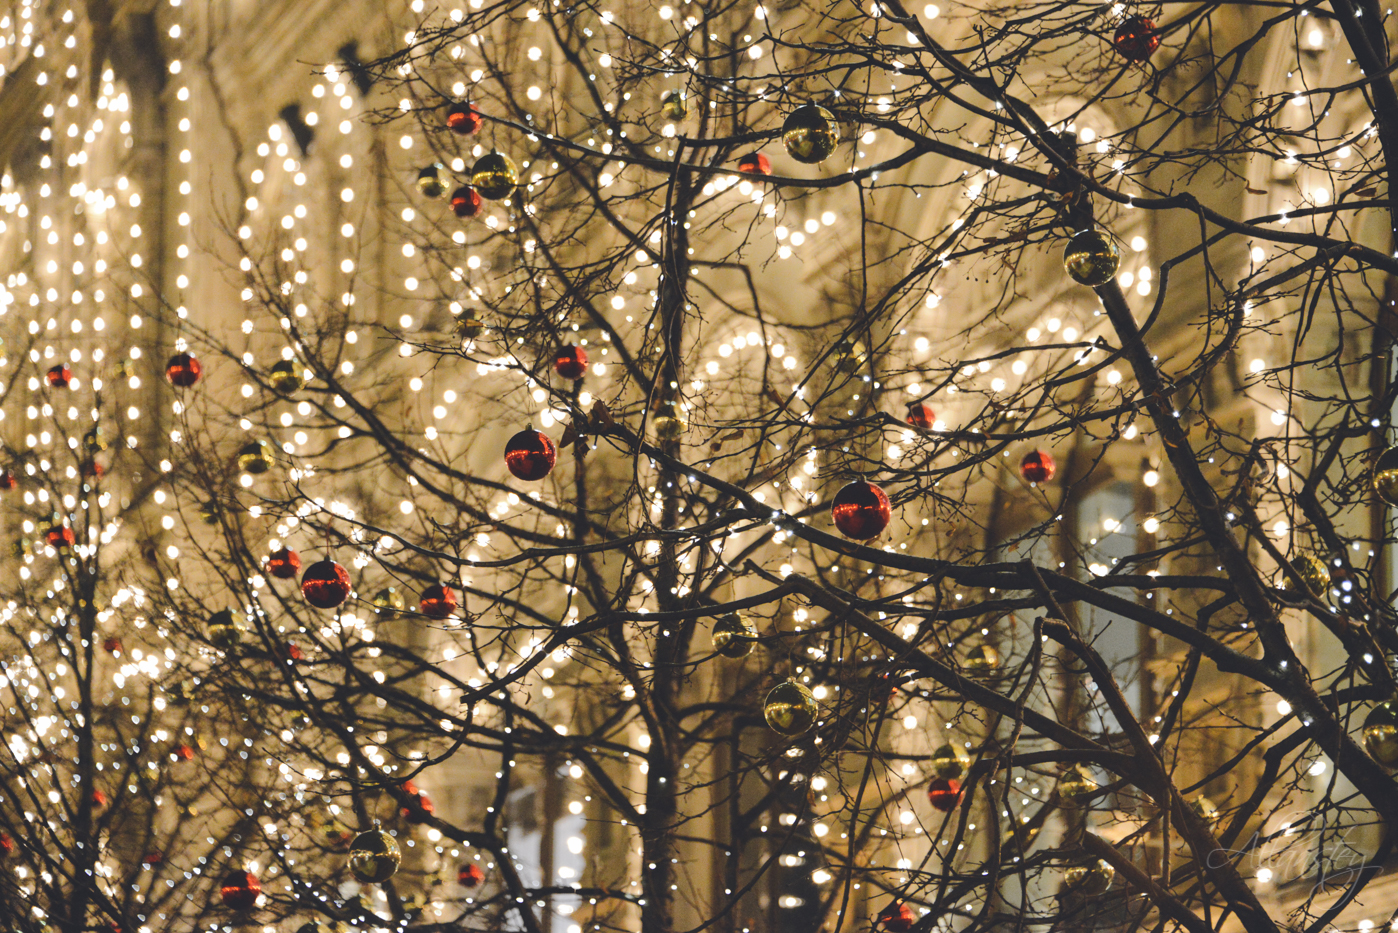 Trees decorated with Christmas balls